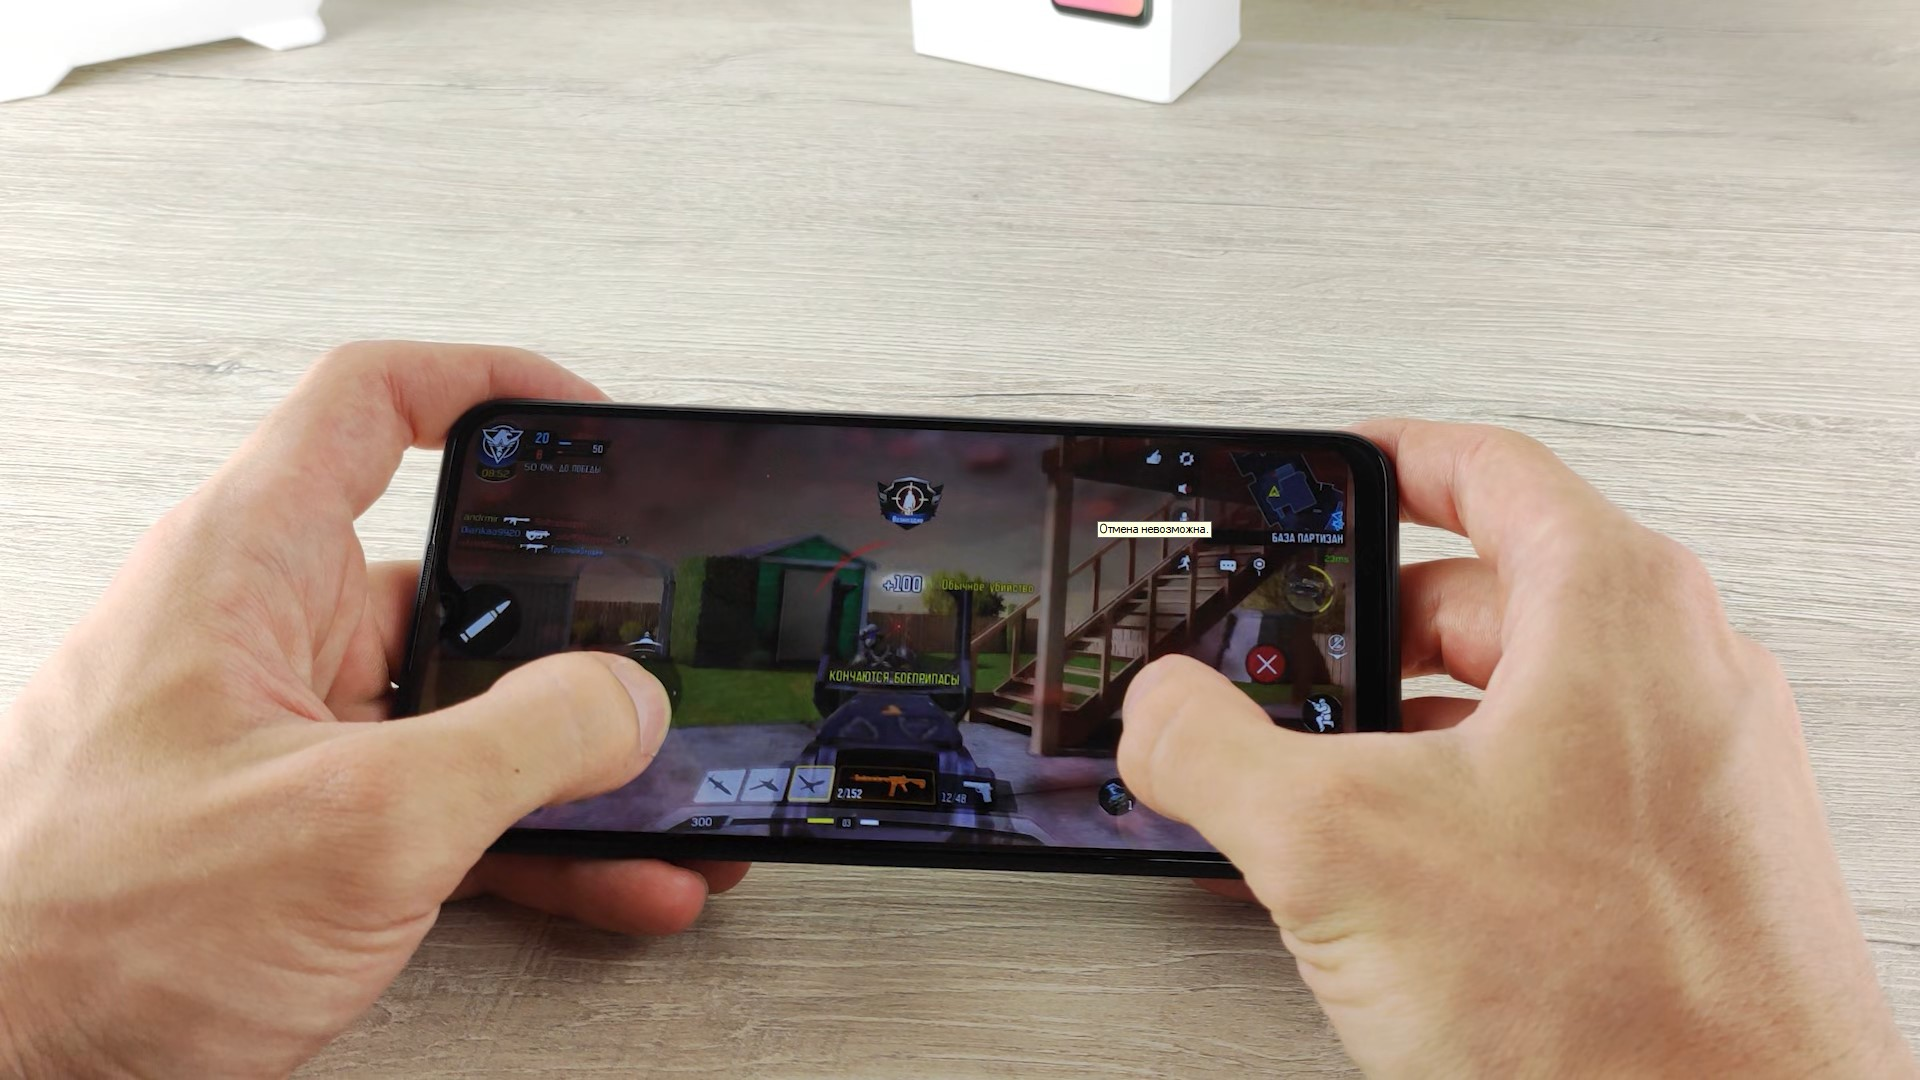 CoD Call of Dury Mobile на Redmi 9